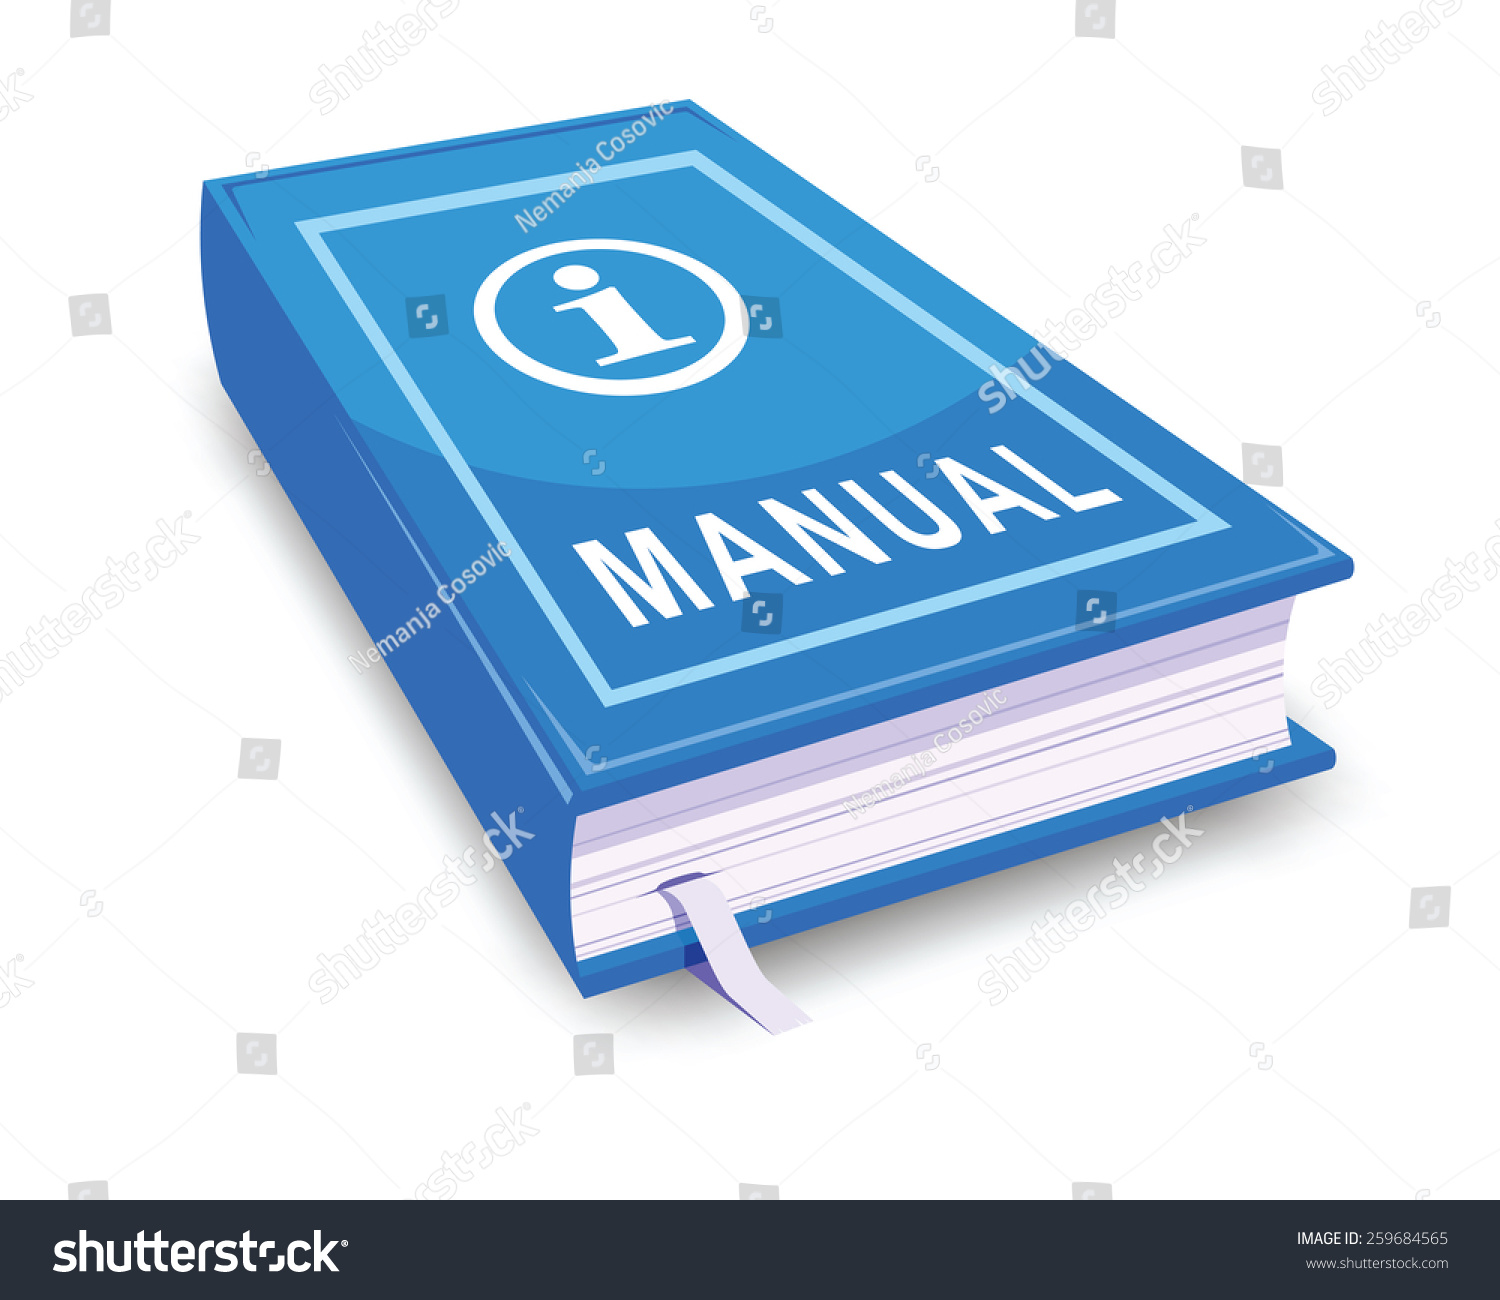 Manual user guide stock vector 259684565 shutterstock for Vector canape user manual